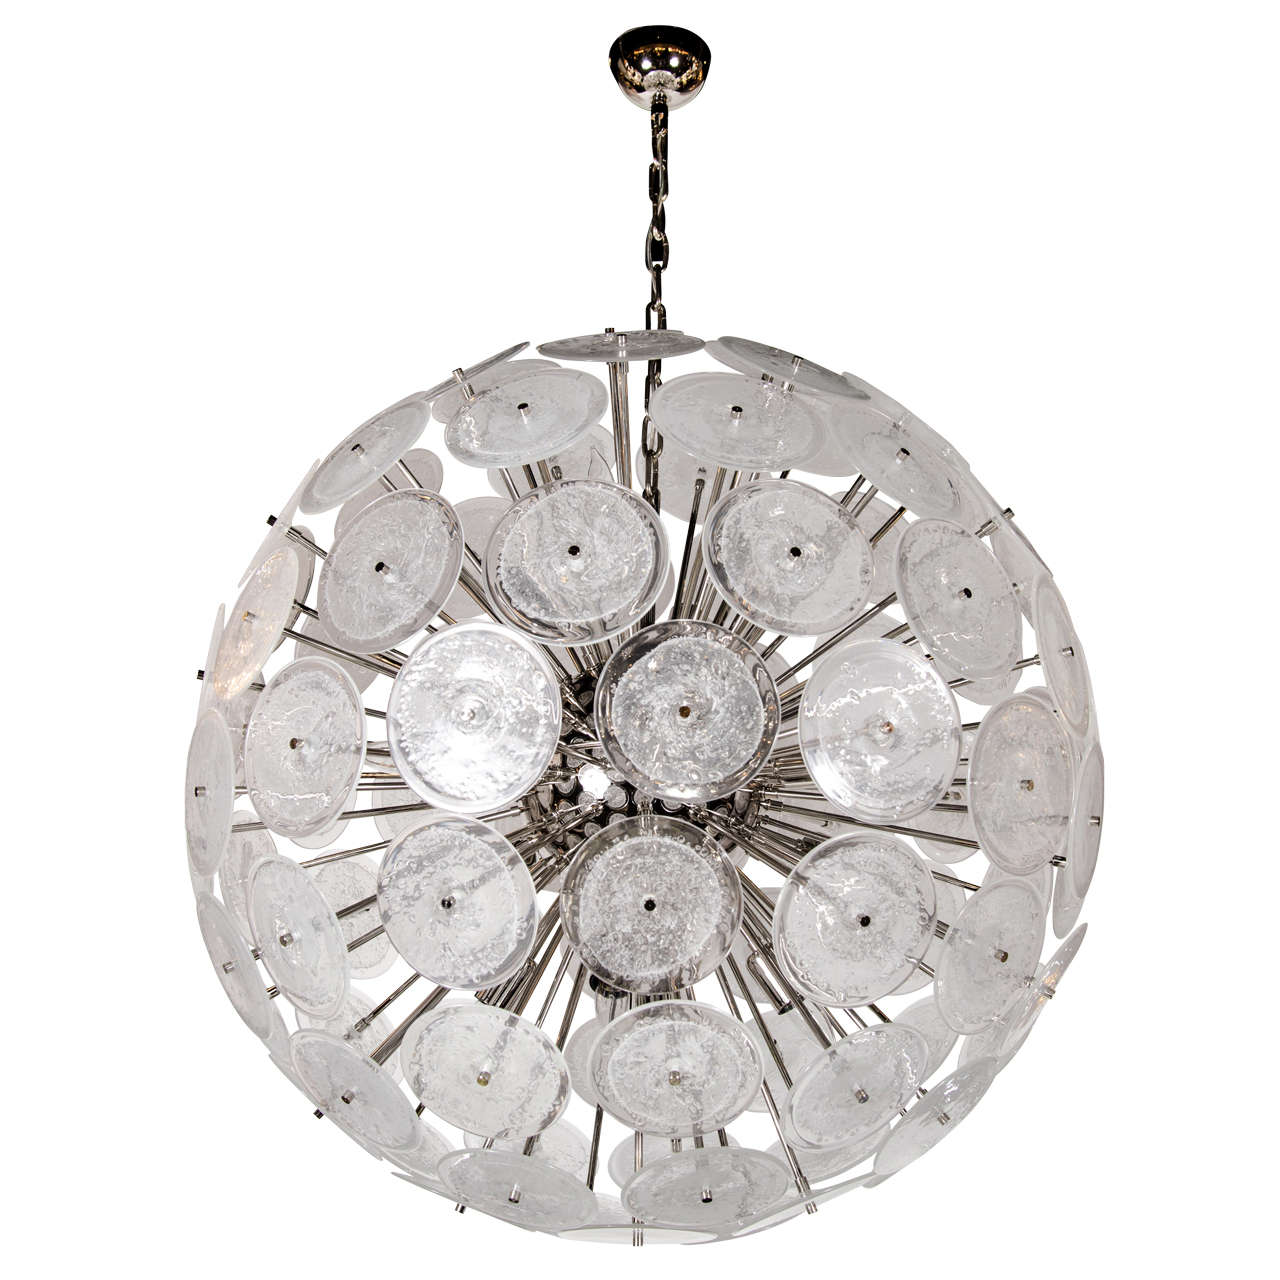 Spectacular Modernist Vistosi Disc Sputnik Chandelier